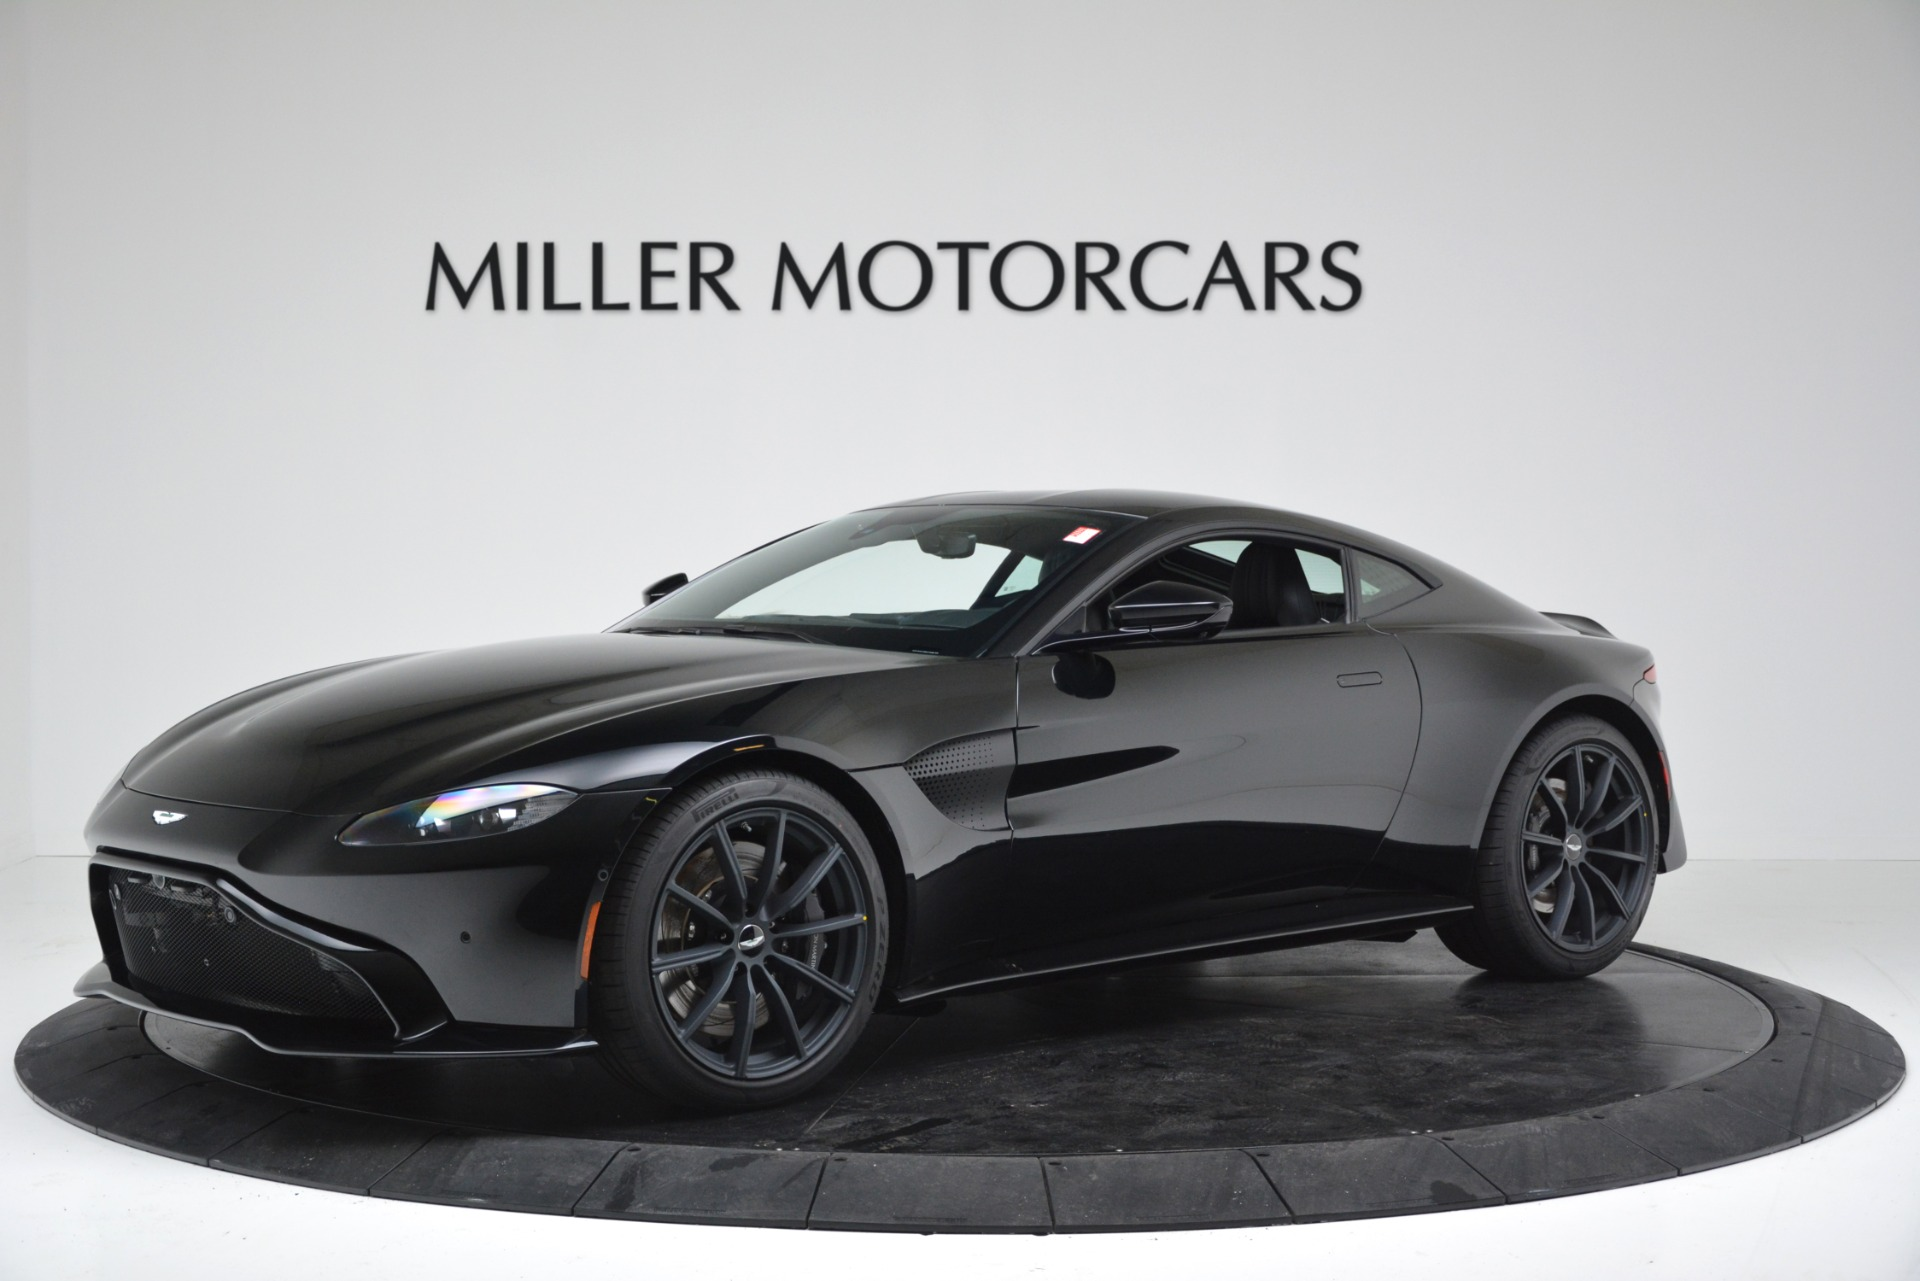 New 2019 Aston Martin Vantage V8 for sale Sold at Bentley Greenwich in Greenwich CT 06830 1